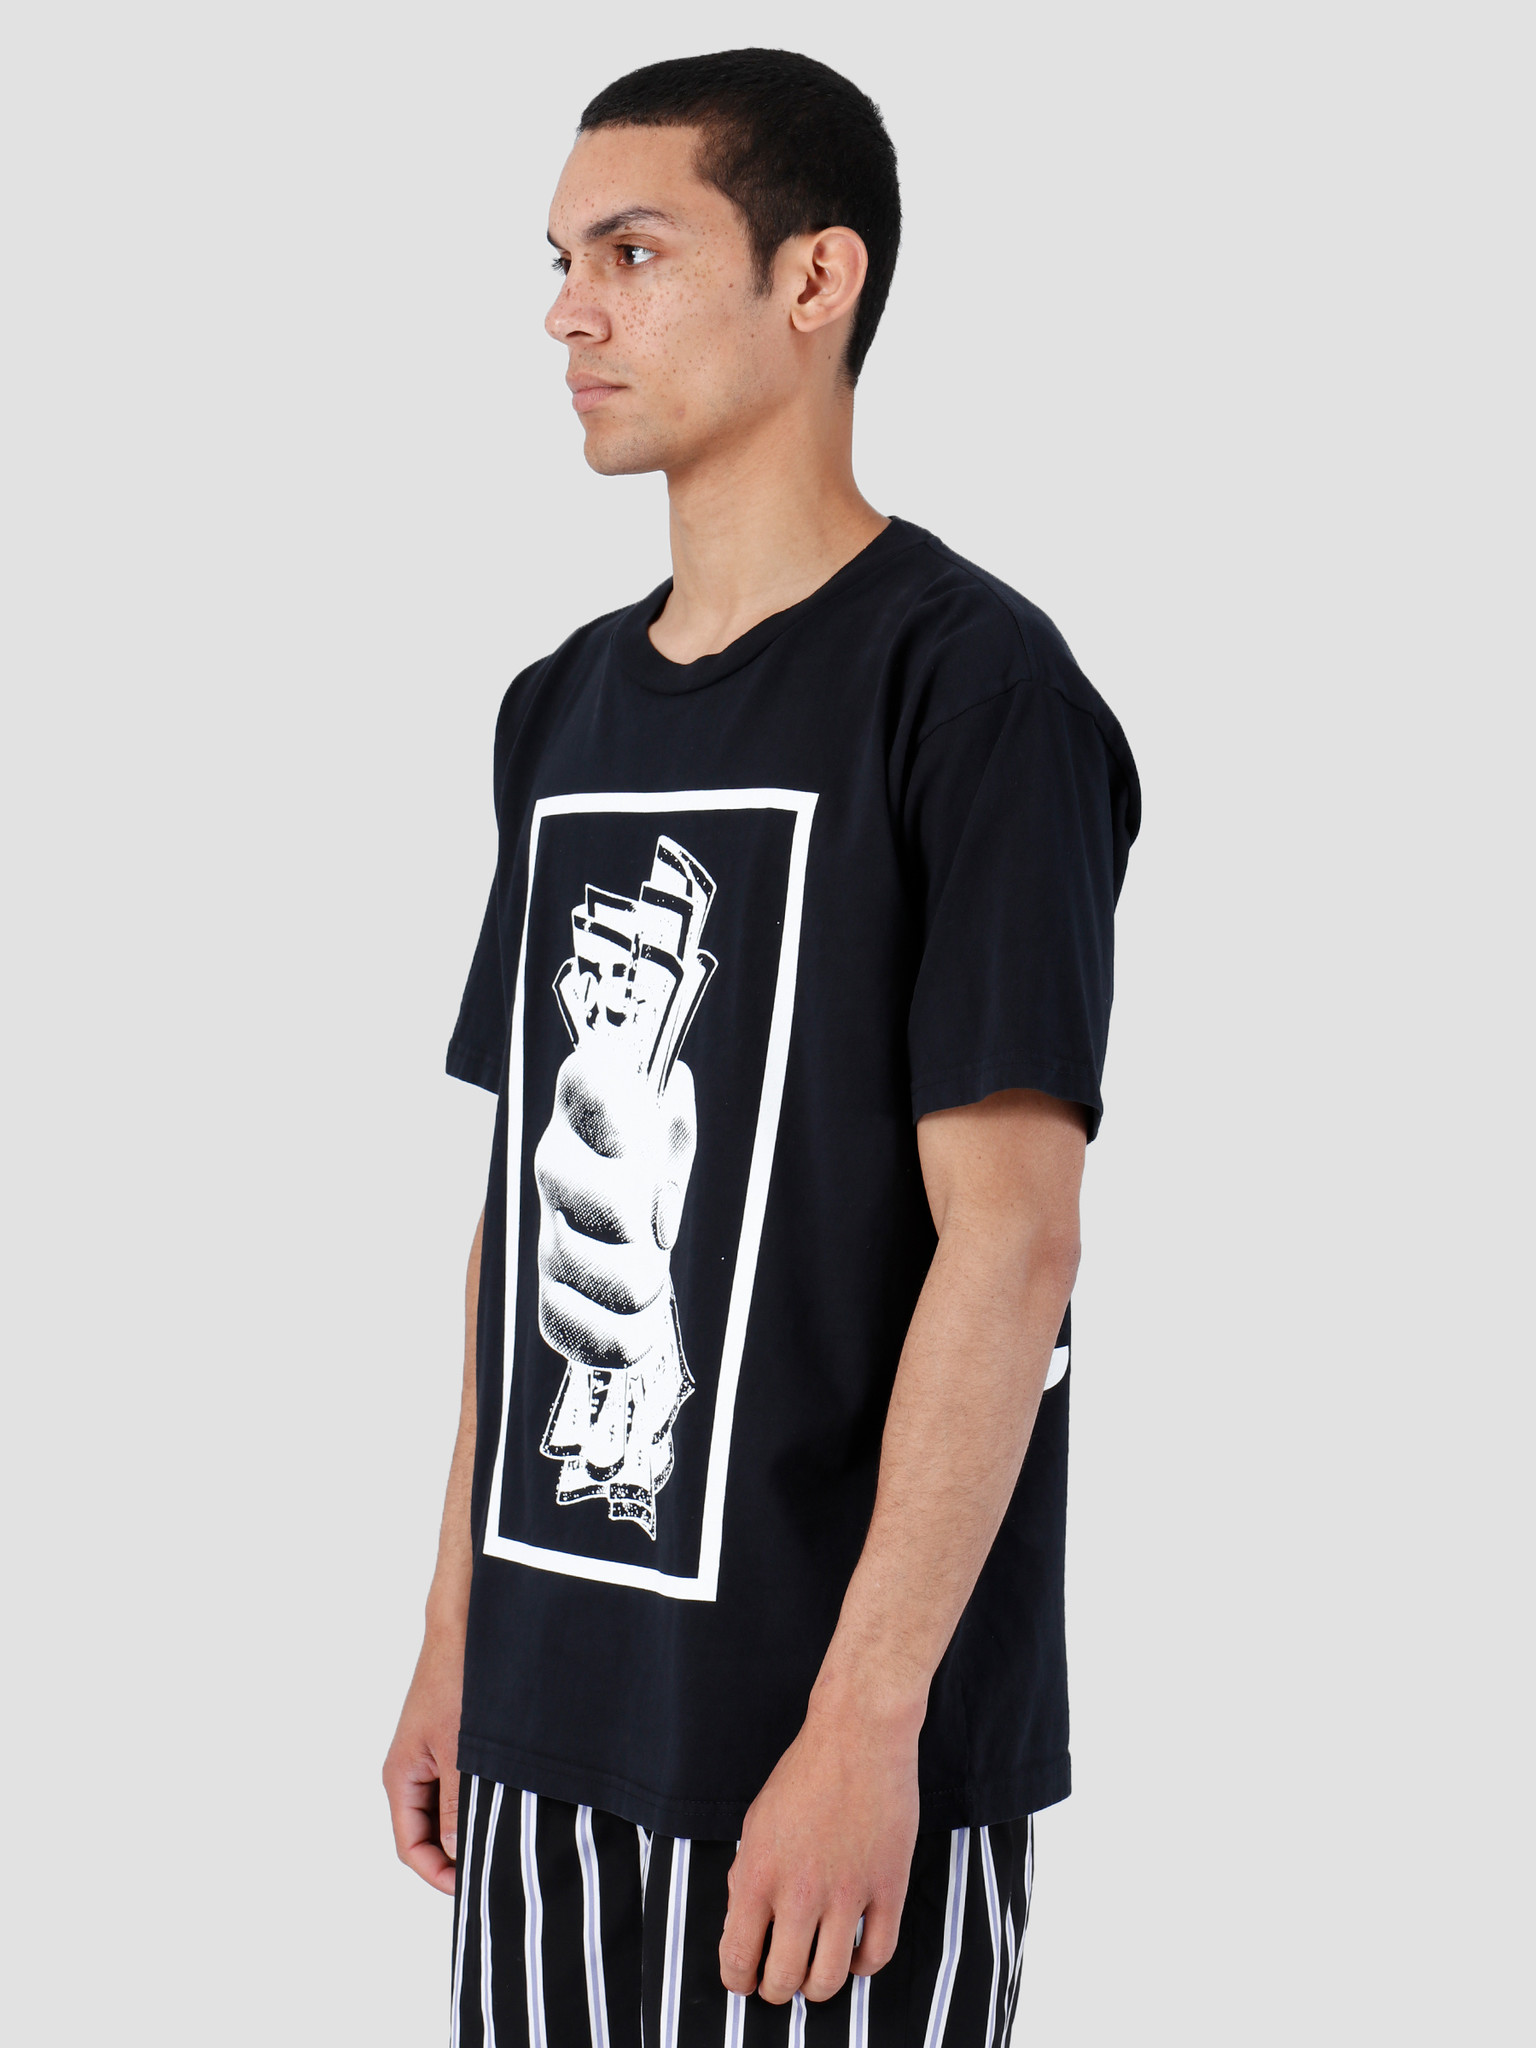 Obey Obey C4C Heavy Weight Classic Box T-Shirt Off Black 166911973-OBK